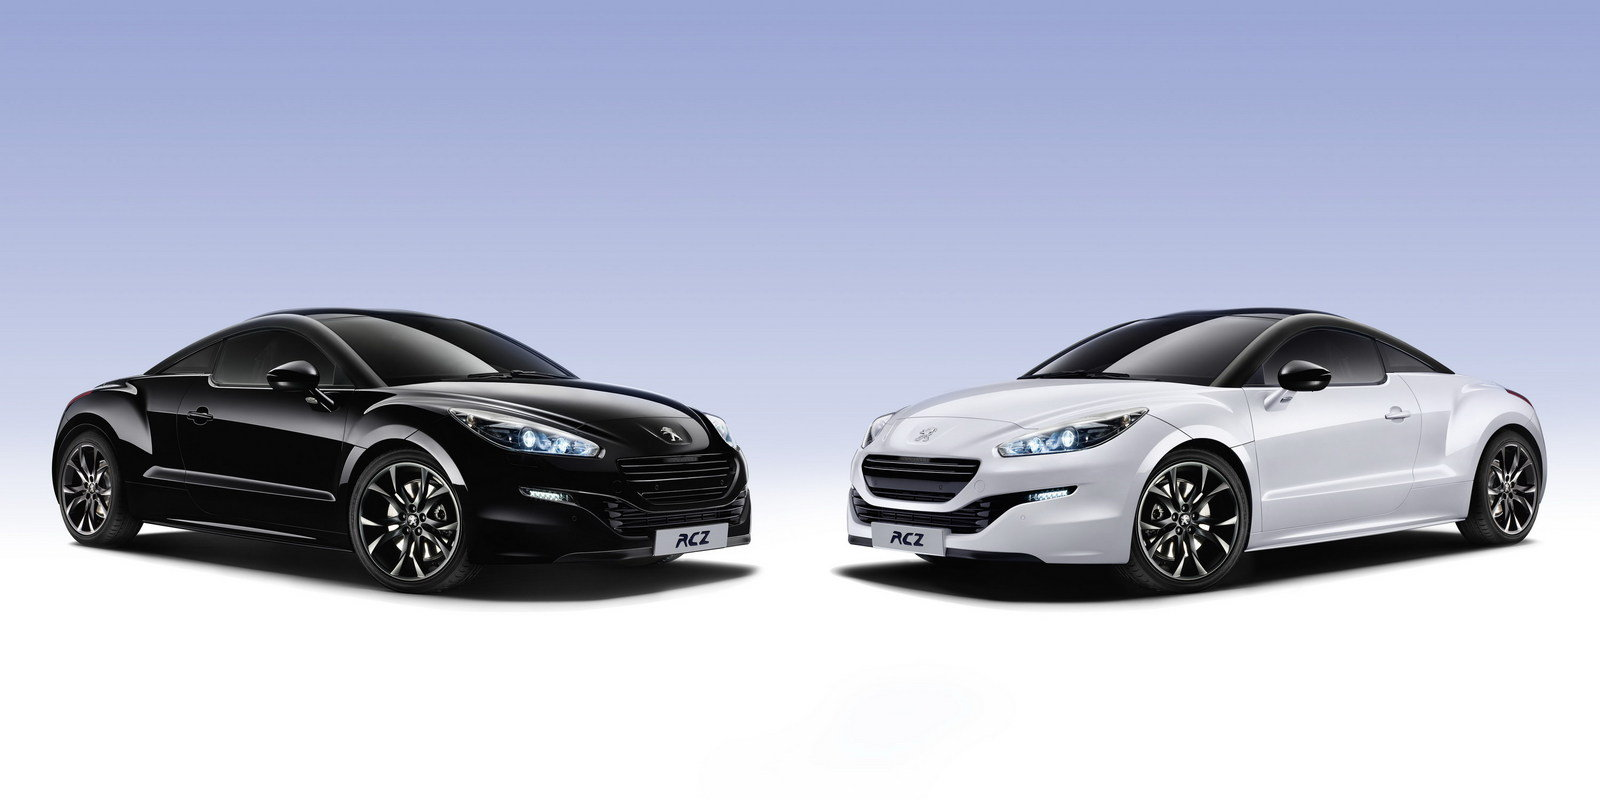 Sport Matte 2013 Peugeot Rcz Magnetic Limited Edition | Top Speed